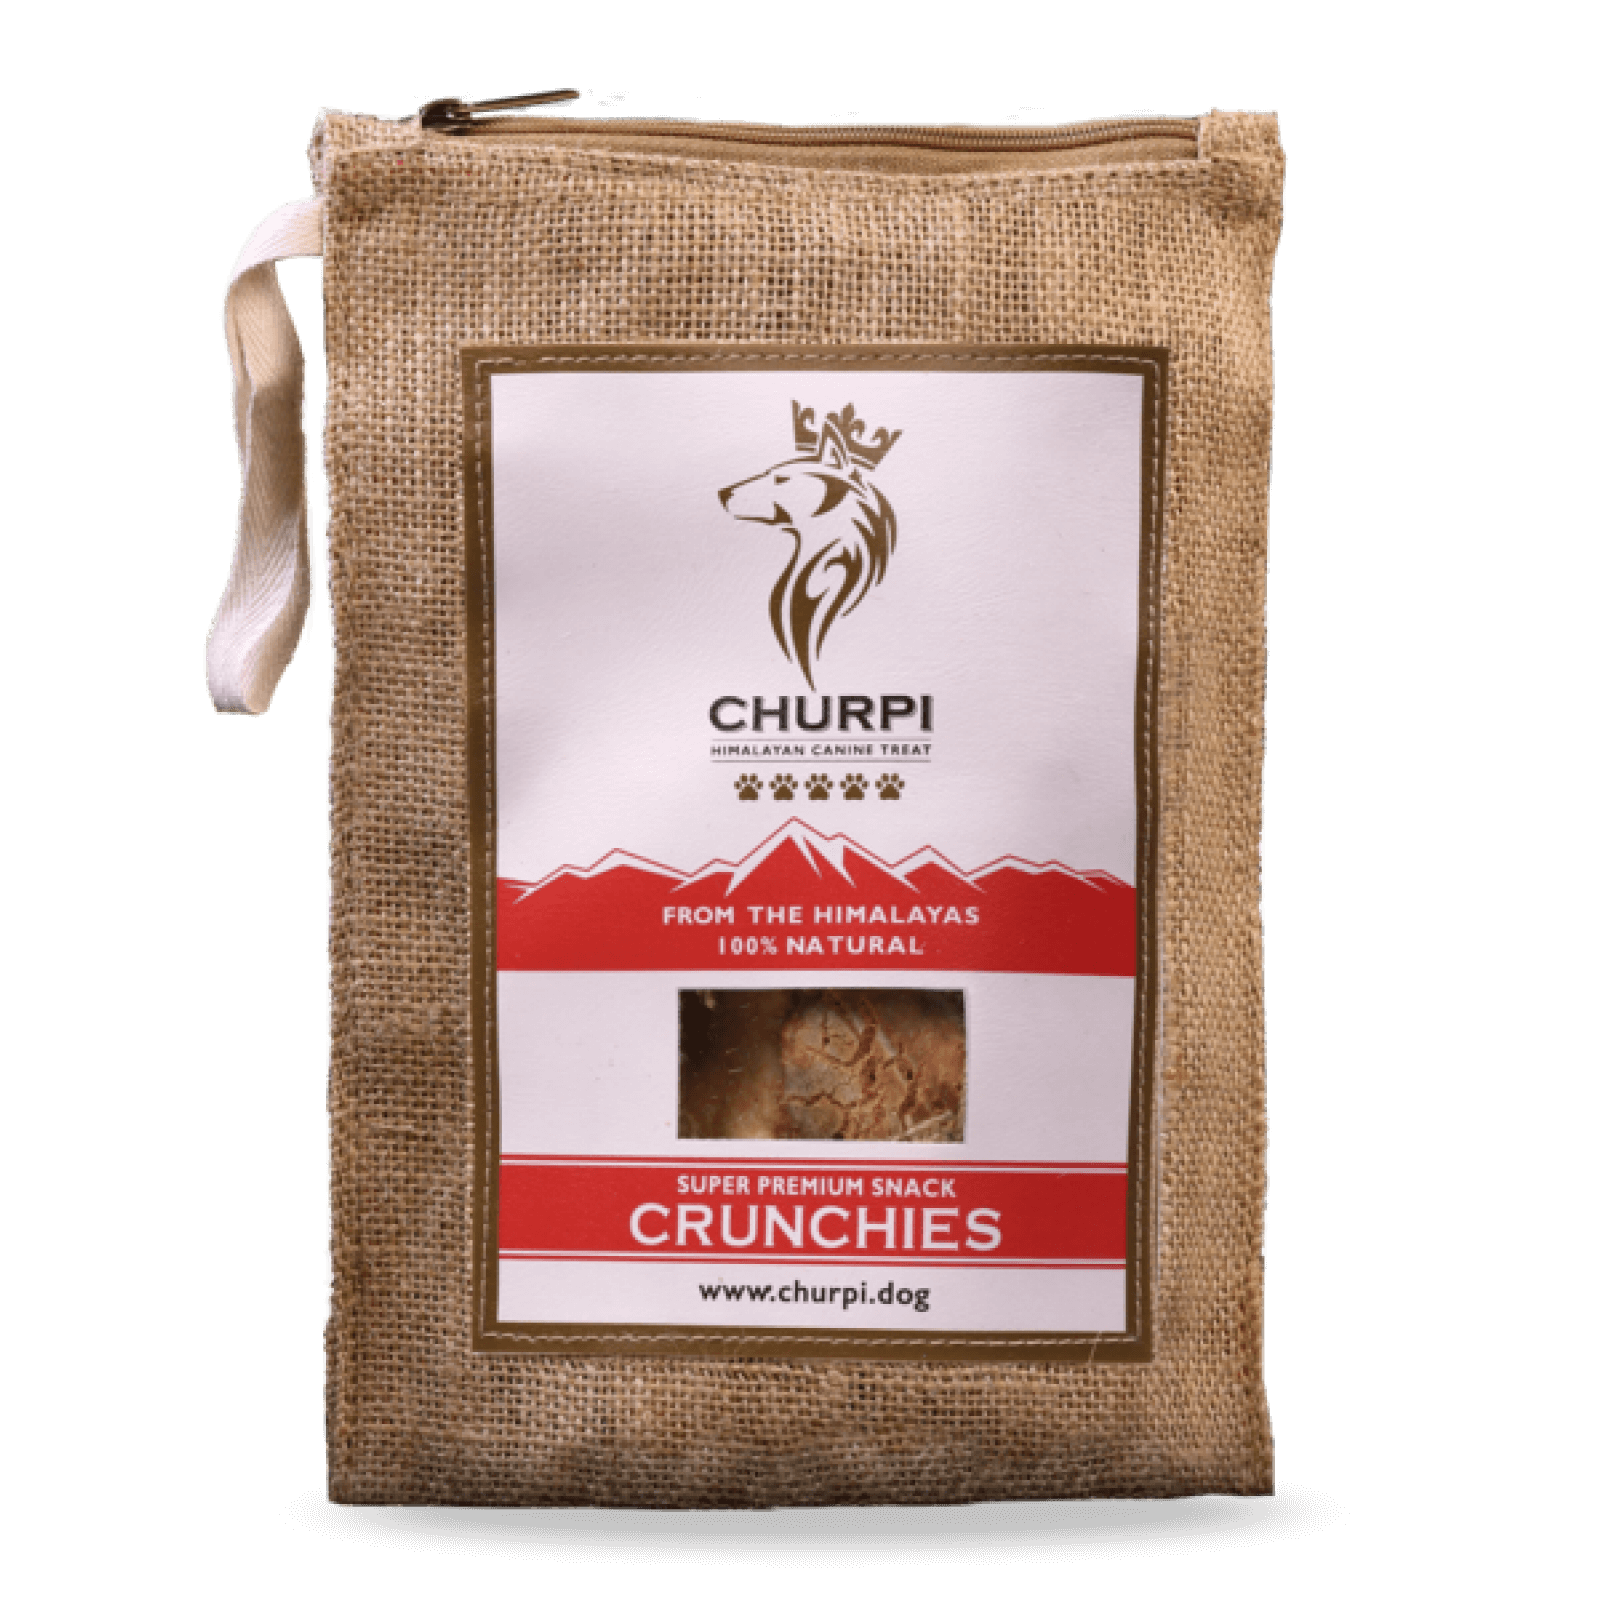 Churpi Crunchies